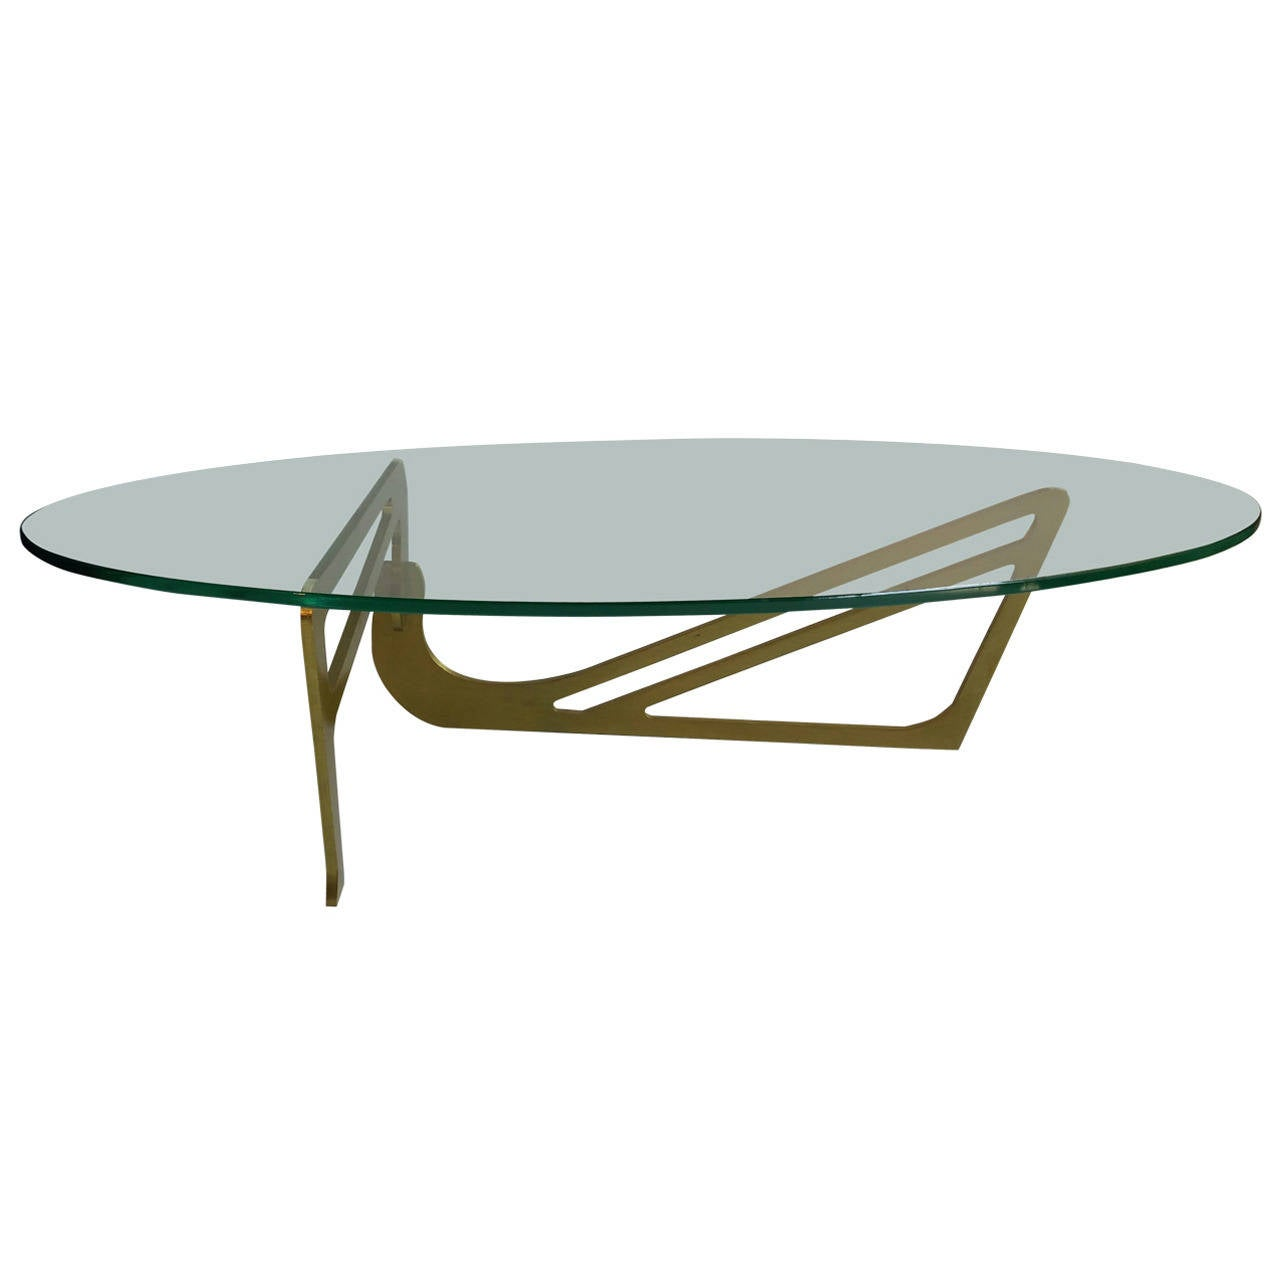 Unusual Solid Brass And Glass Noguchi Inspired Coffee Table At 1stdibs